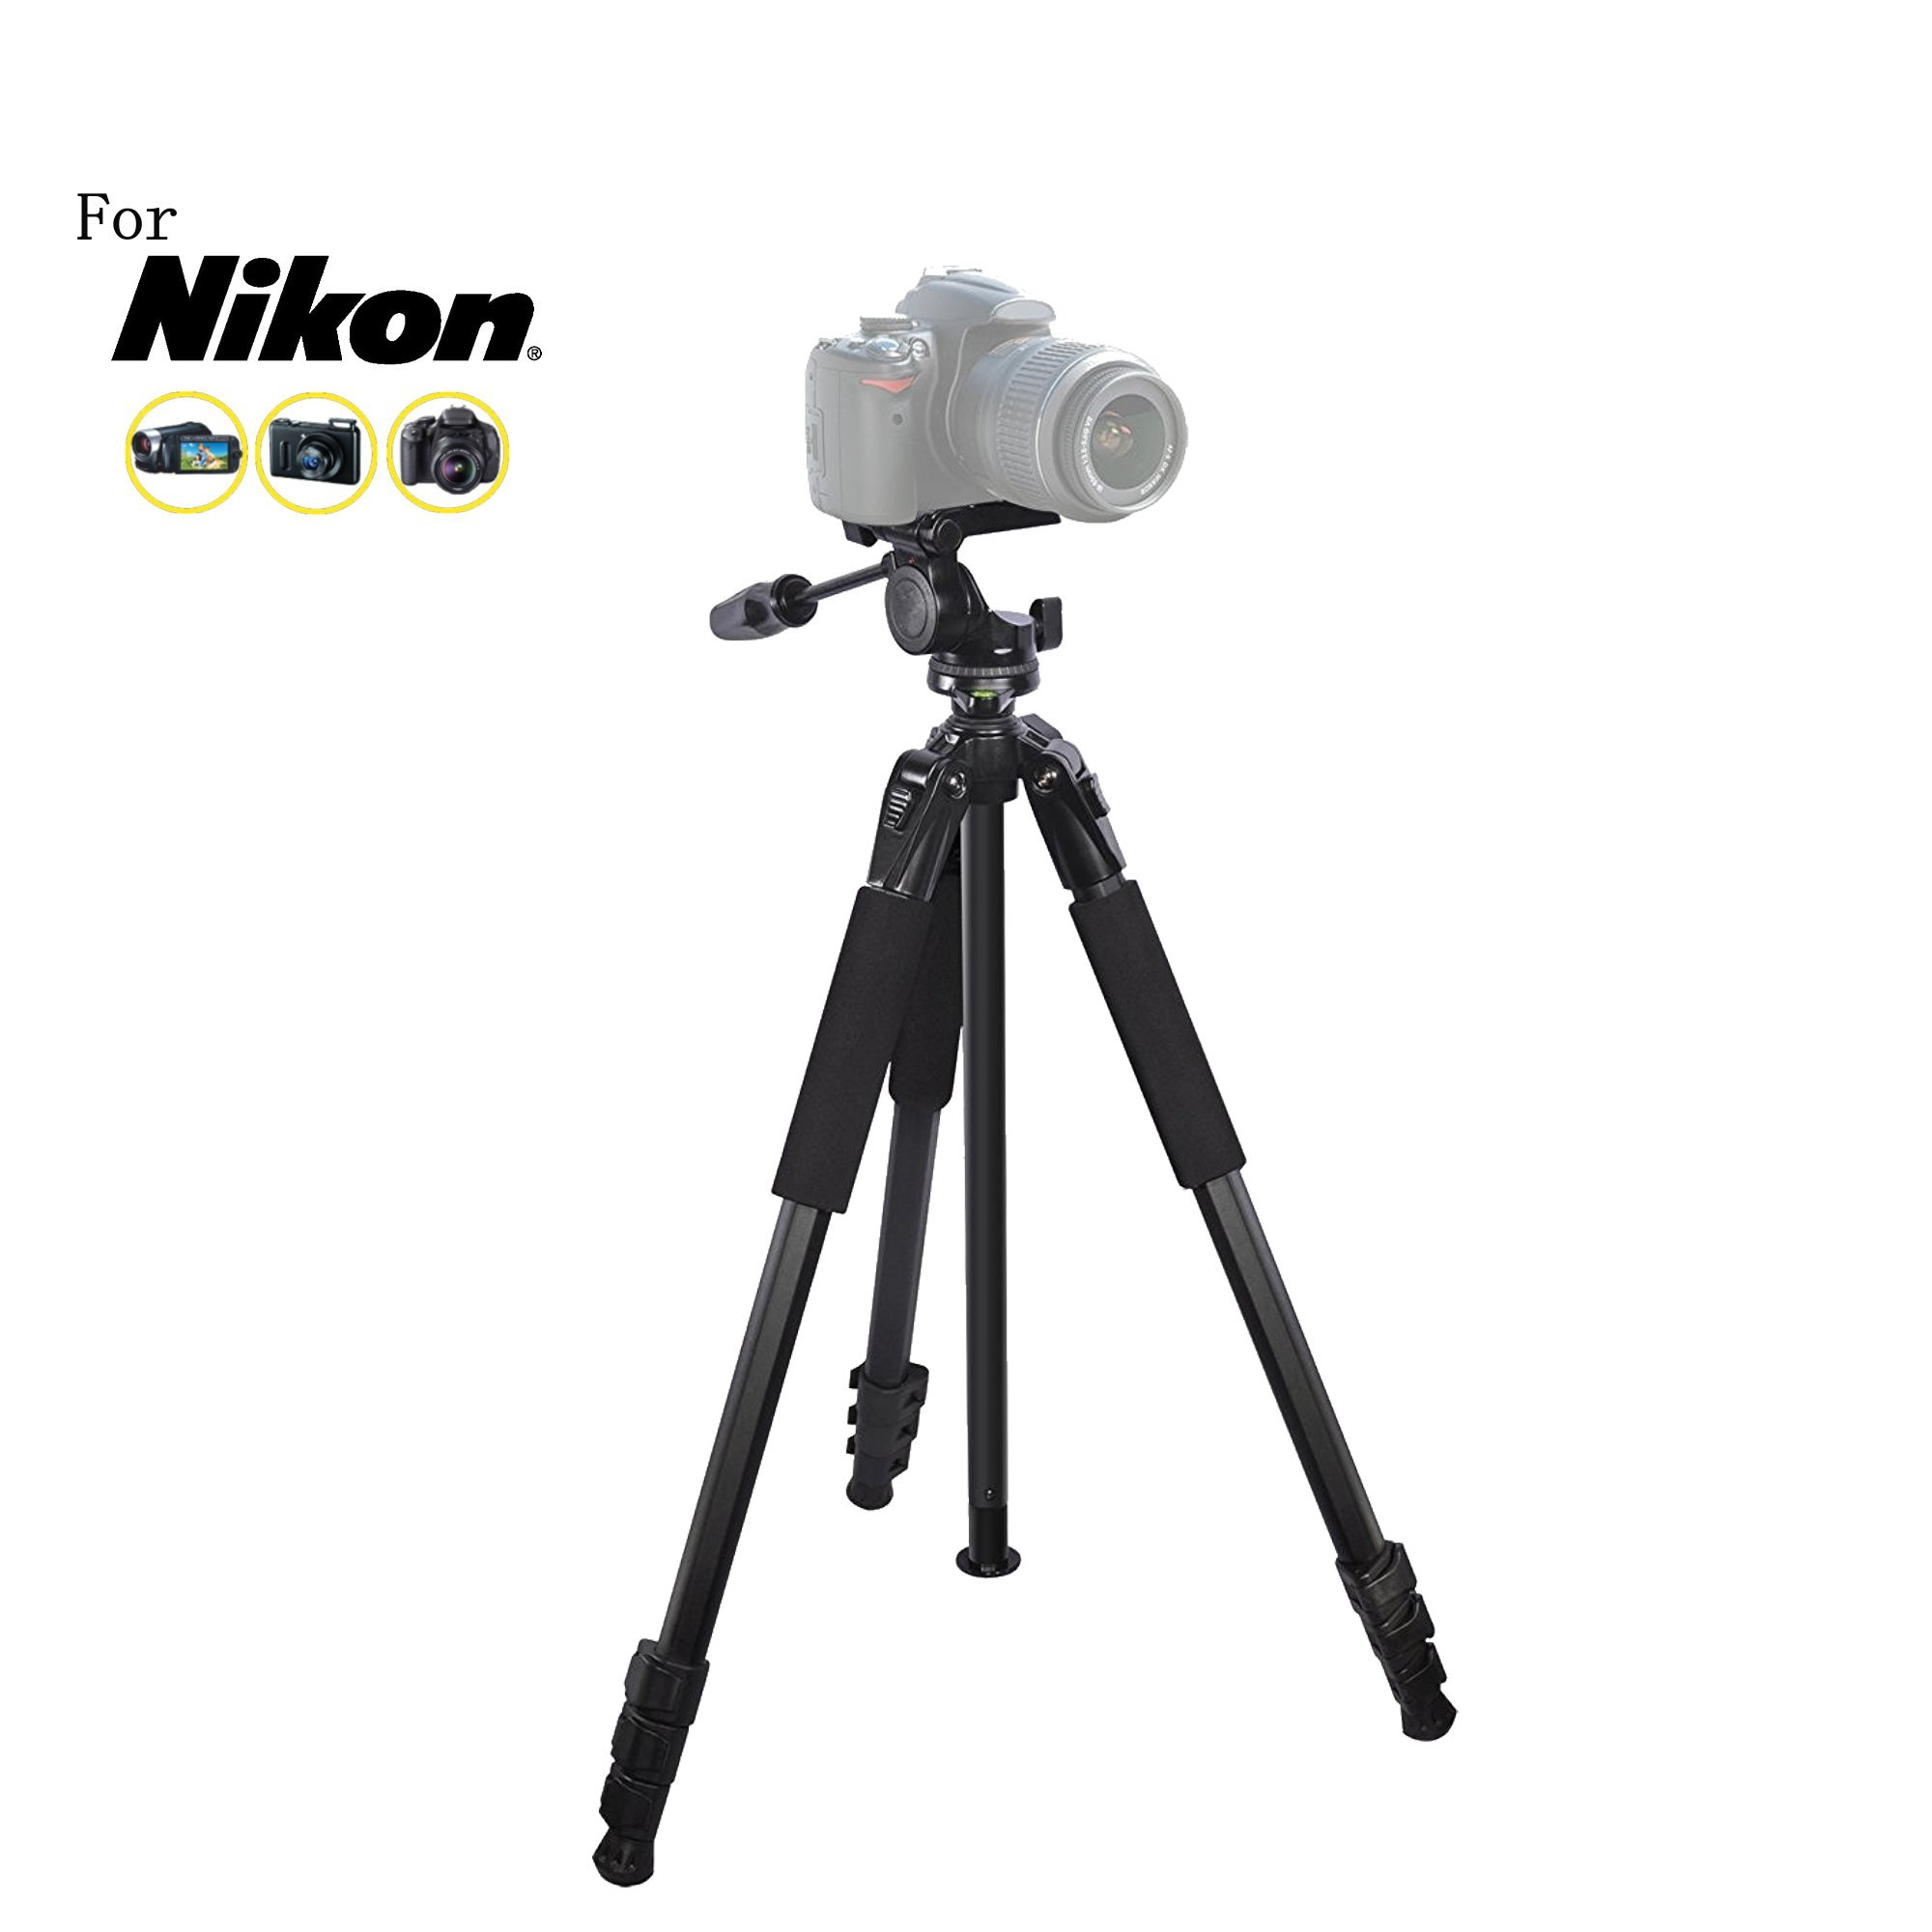 80 inch Heavy Duty Portable tripod for Nikon D500, D750, D5, D610, D810A, D810, D800E, D800, D700, D600, D3S, D3X, D4, D4S Digtal SLR Cameras: Travel tripod by iSnapPhoto